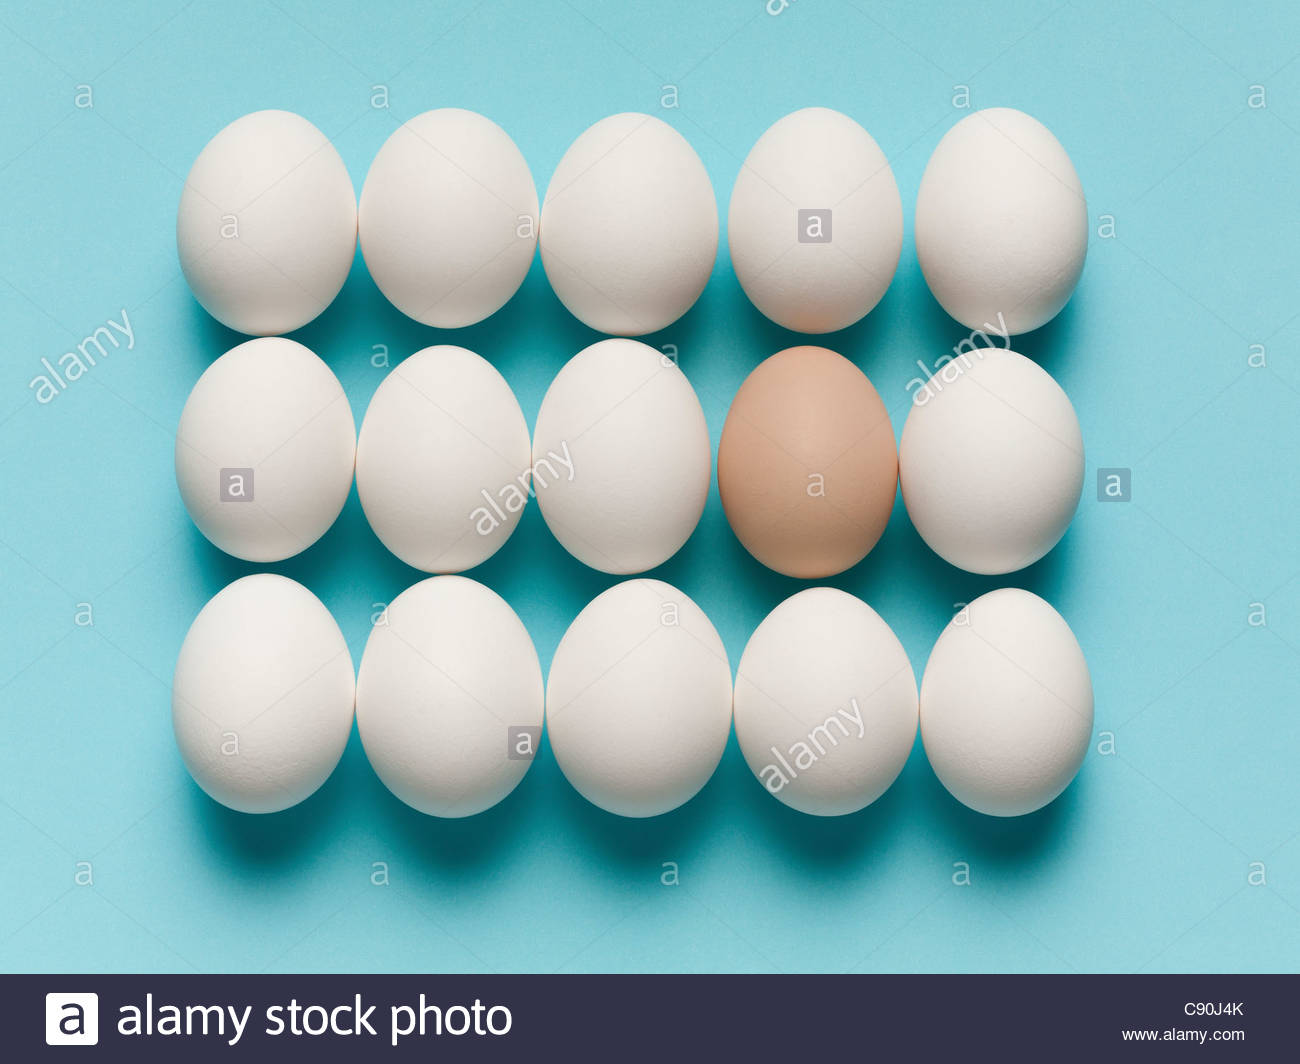 Brown egg with large white eggs - Stock Image